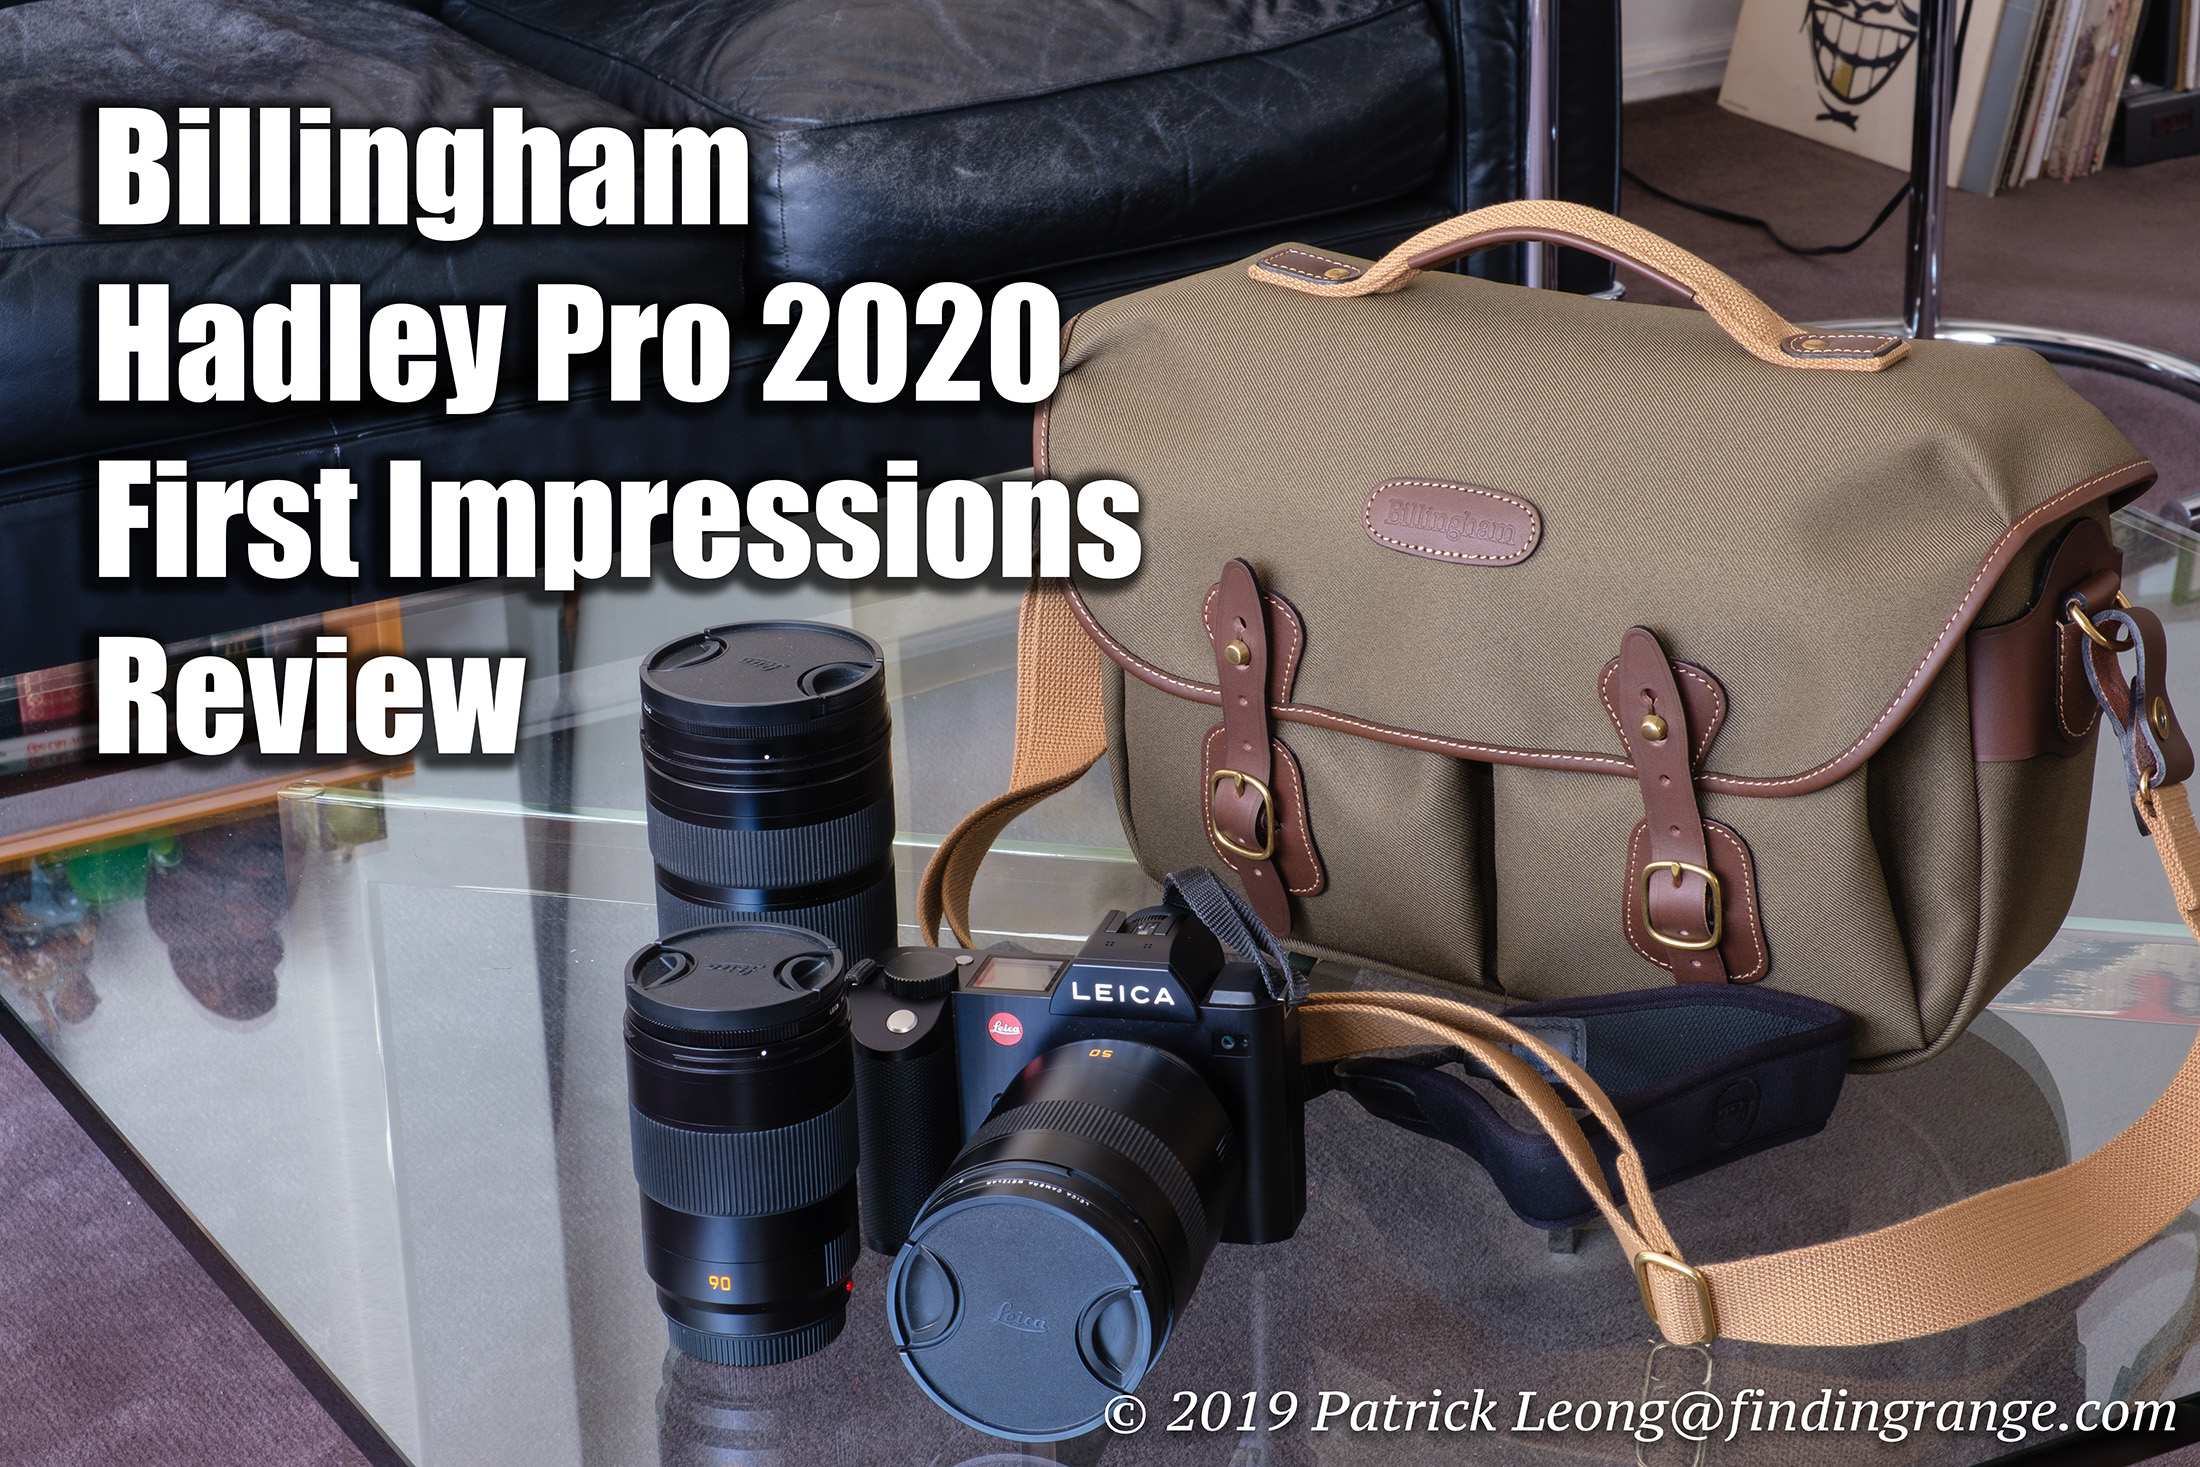 Best Camera Bags 2020 Billingham Hadley Pro 2020 First Impressions Review